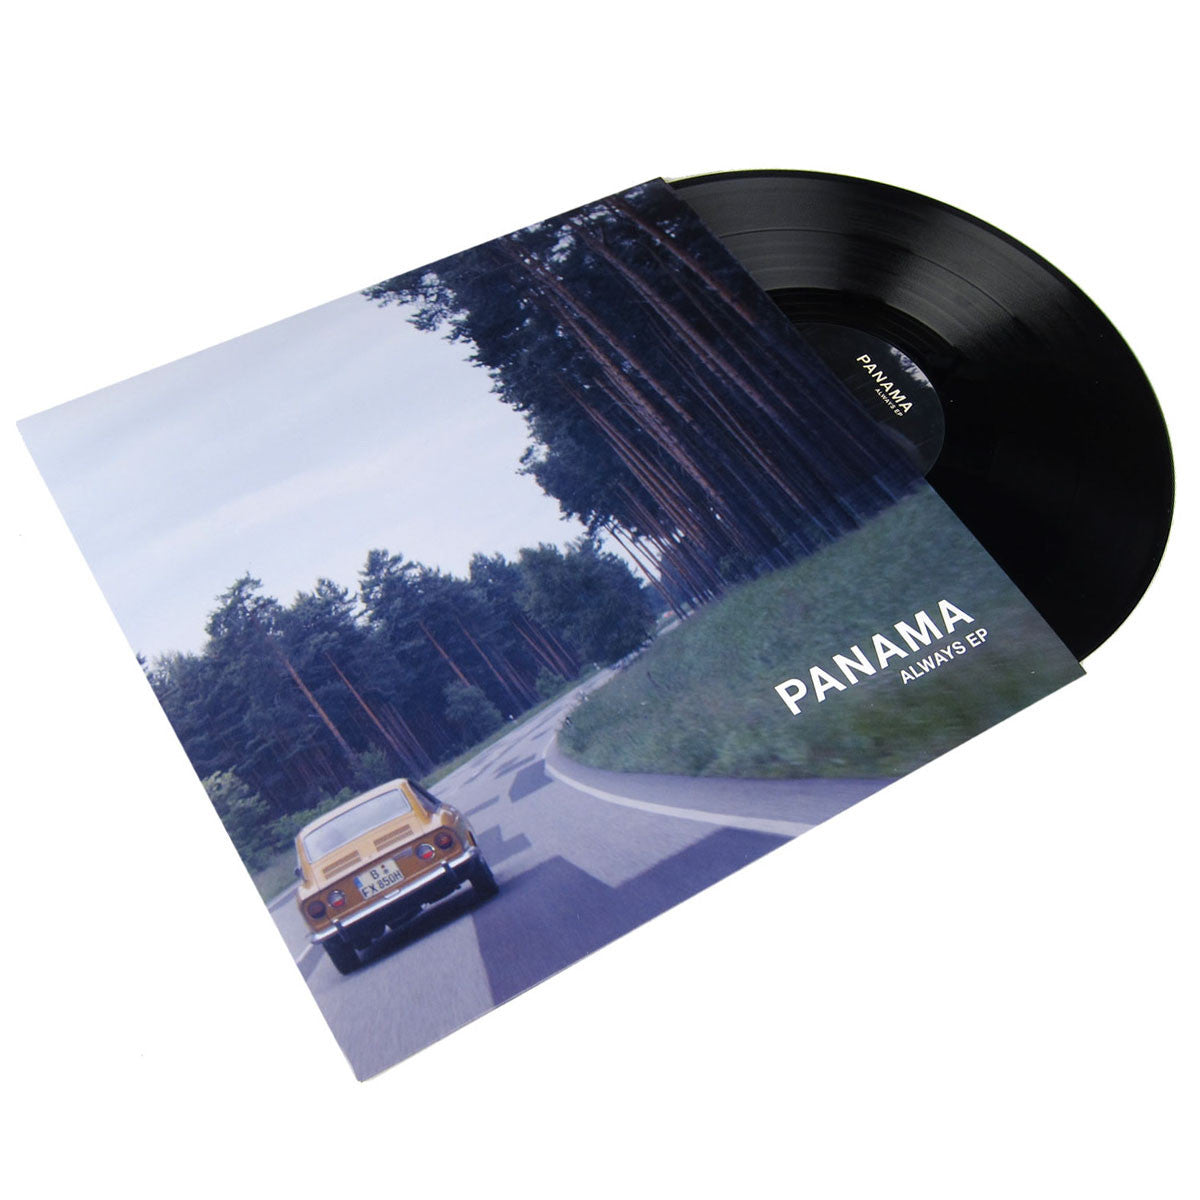 Panama: Always EP (Free MP3) Vinyl 12""